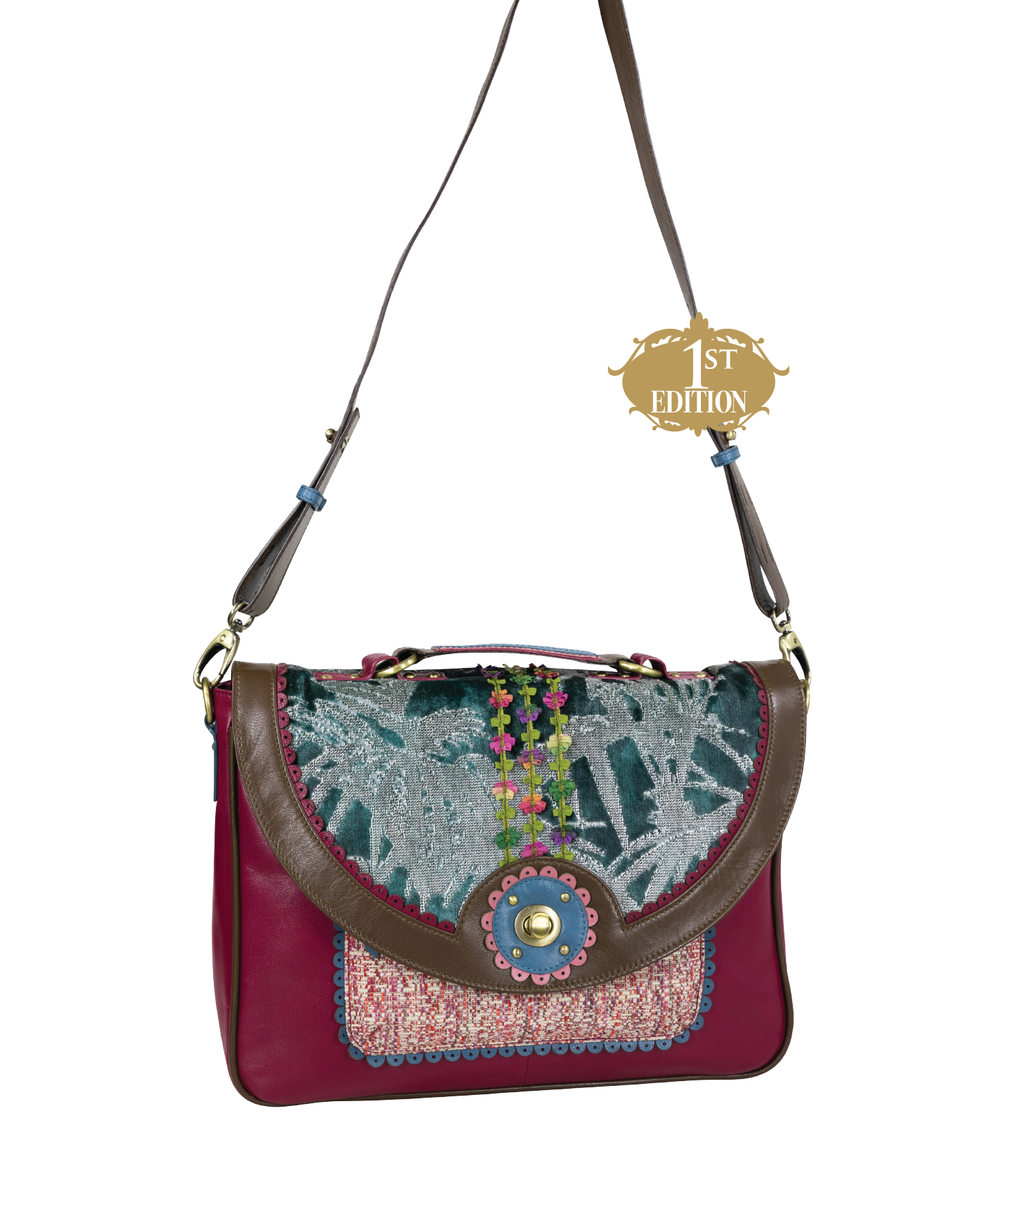 MAGDALENA Crossbody Satchel - Botanical - 1st Edition